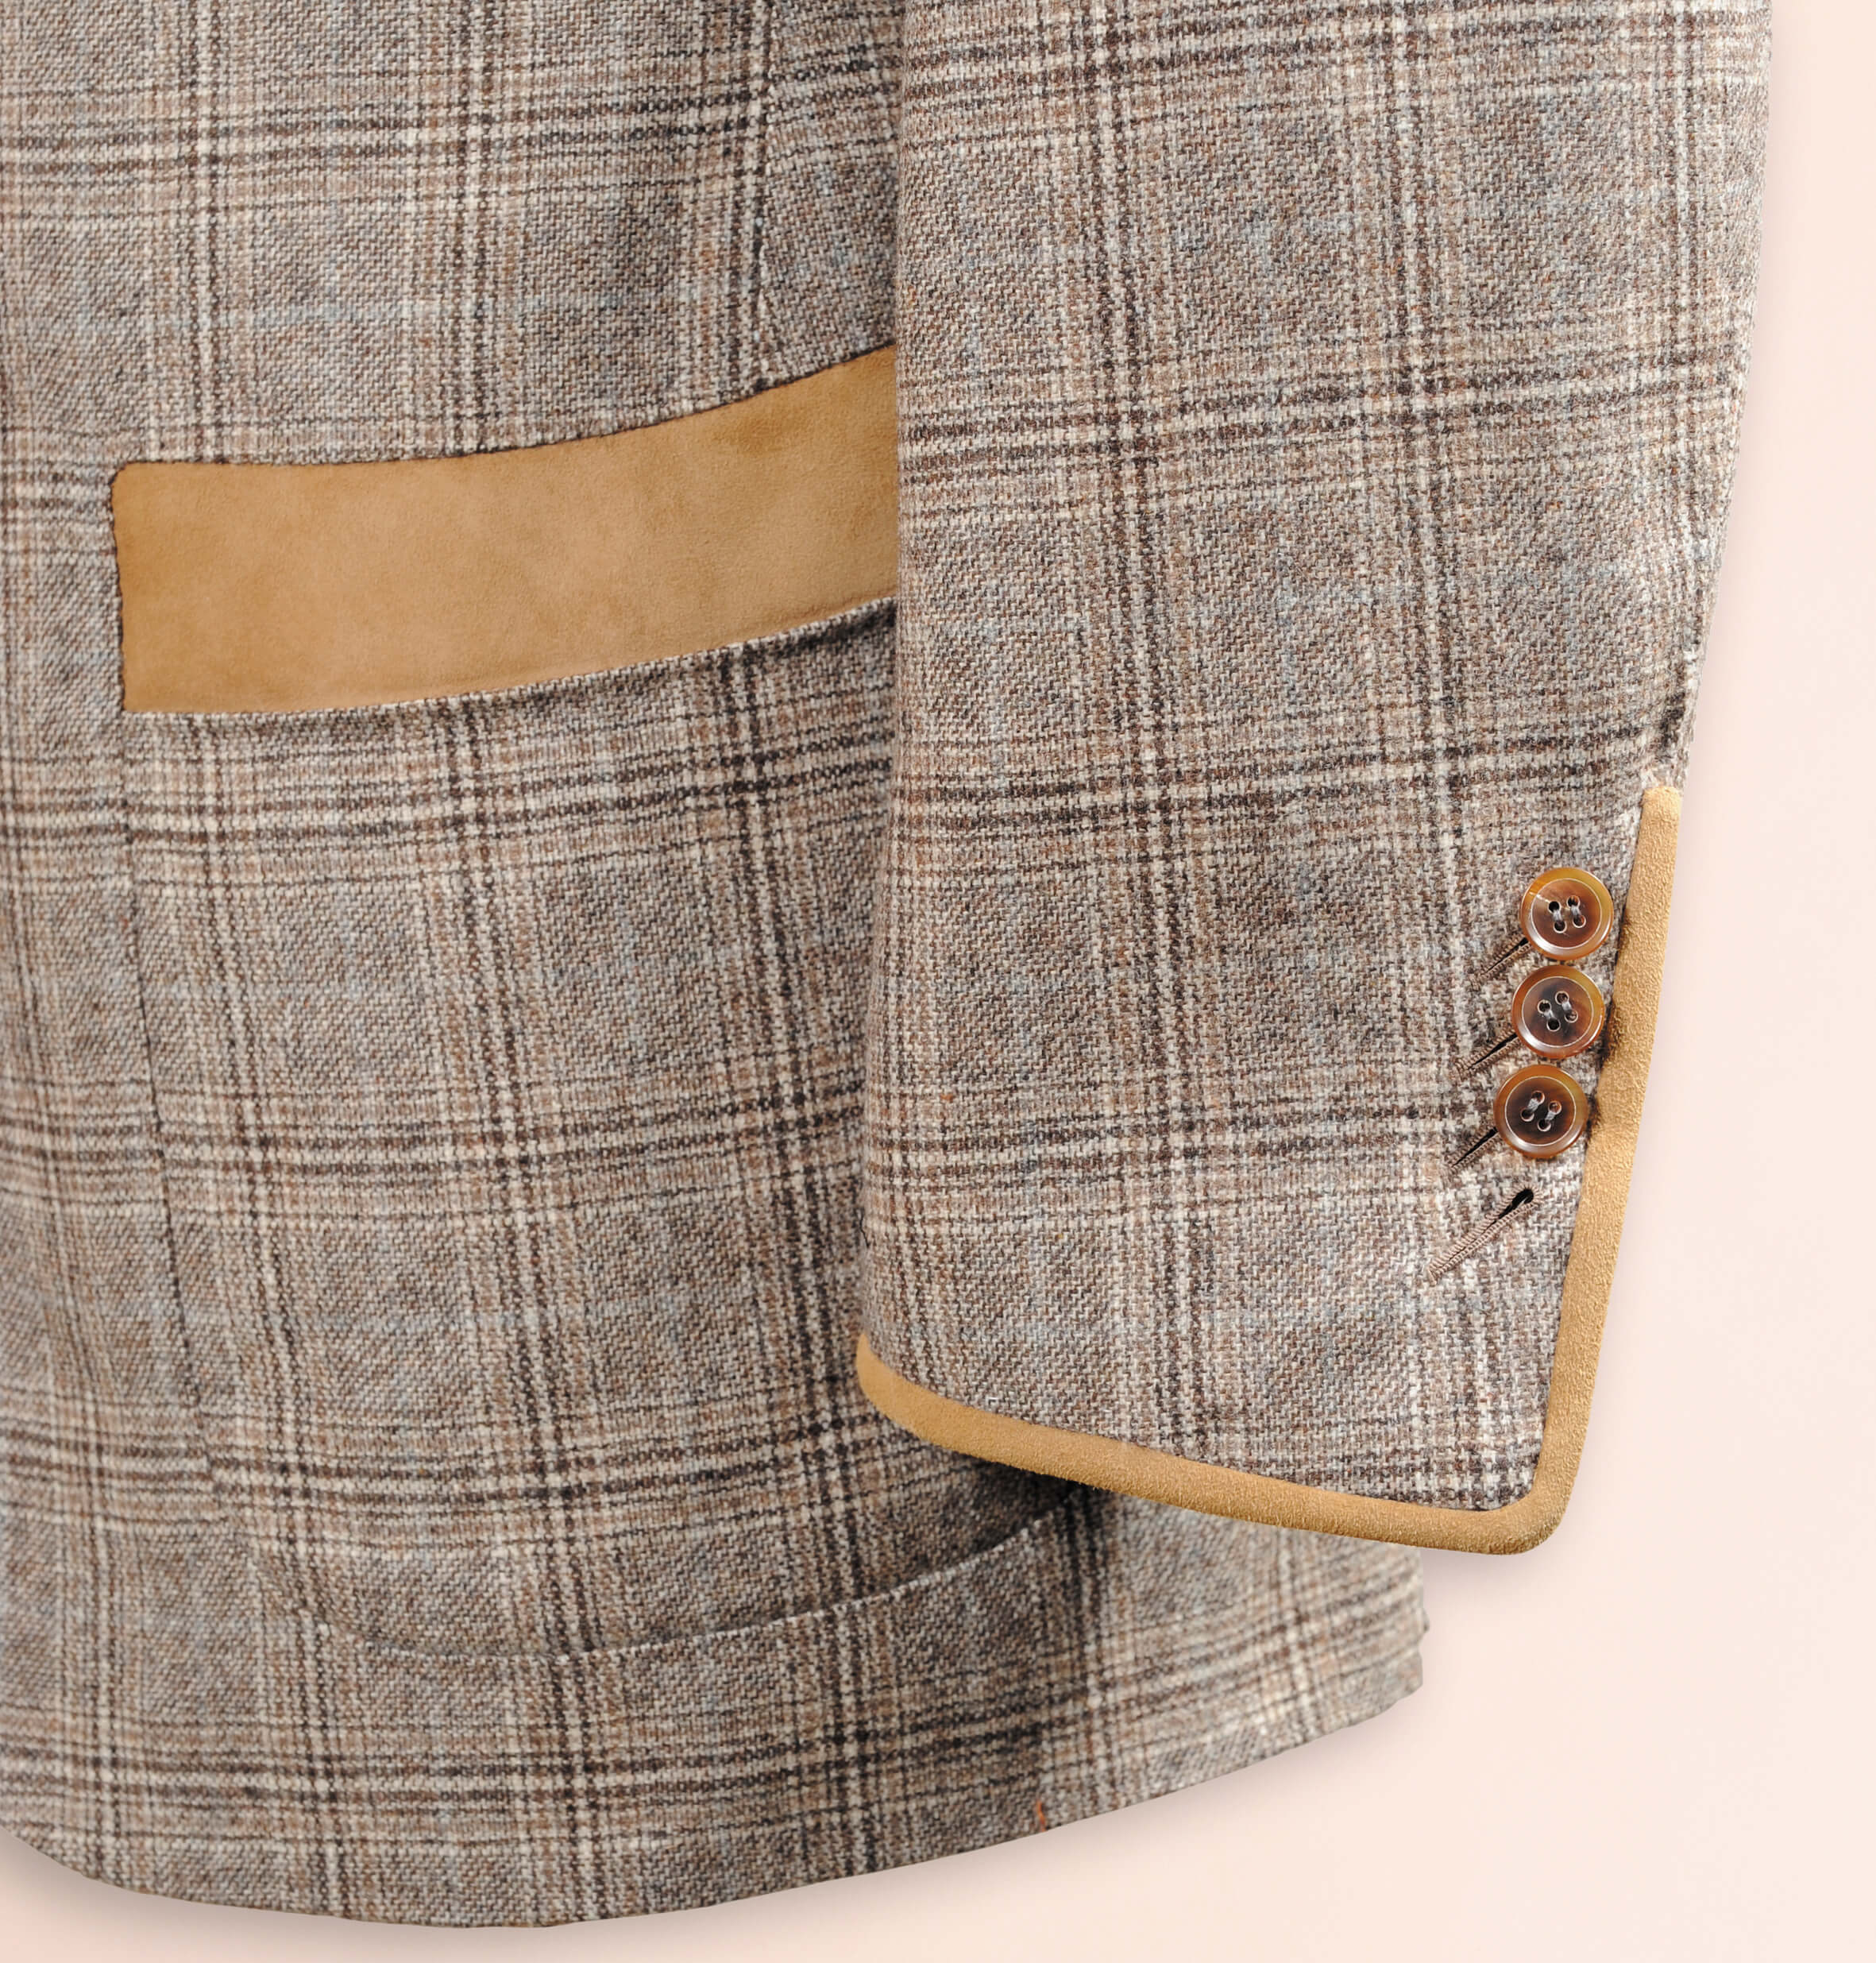 PG Exclusive: three new Cifonelli jackets